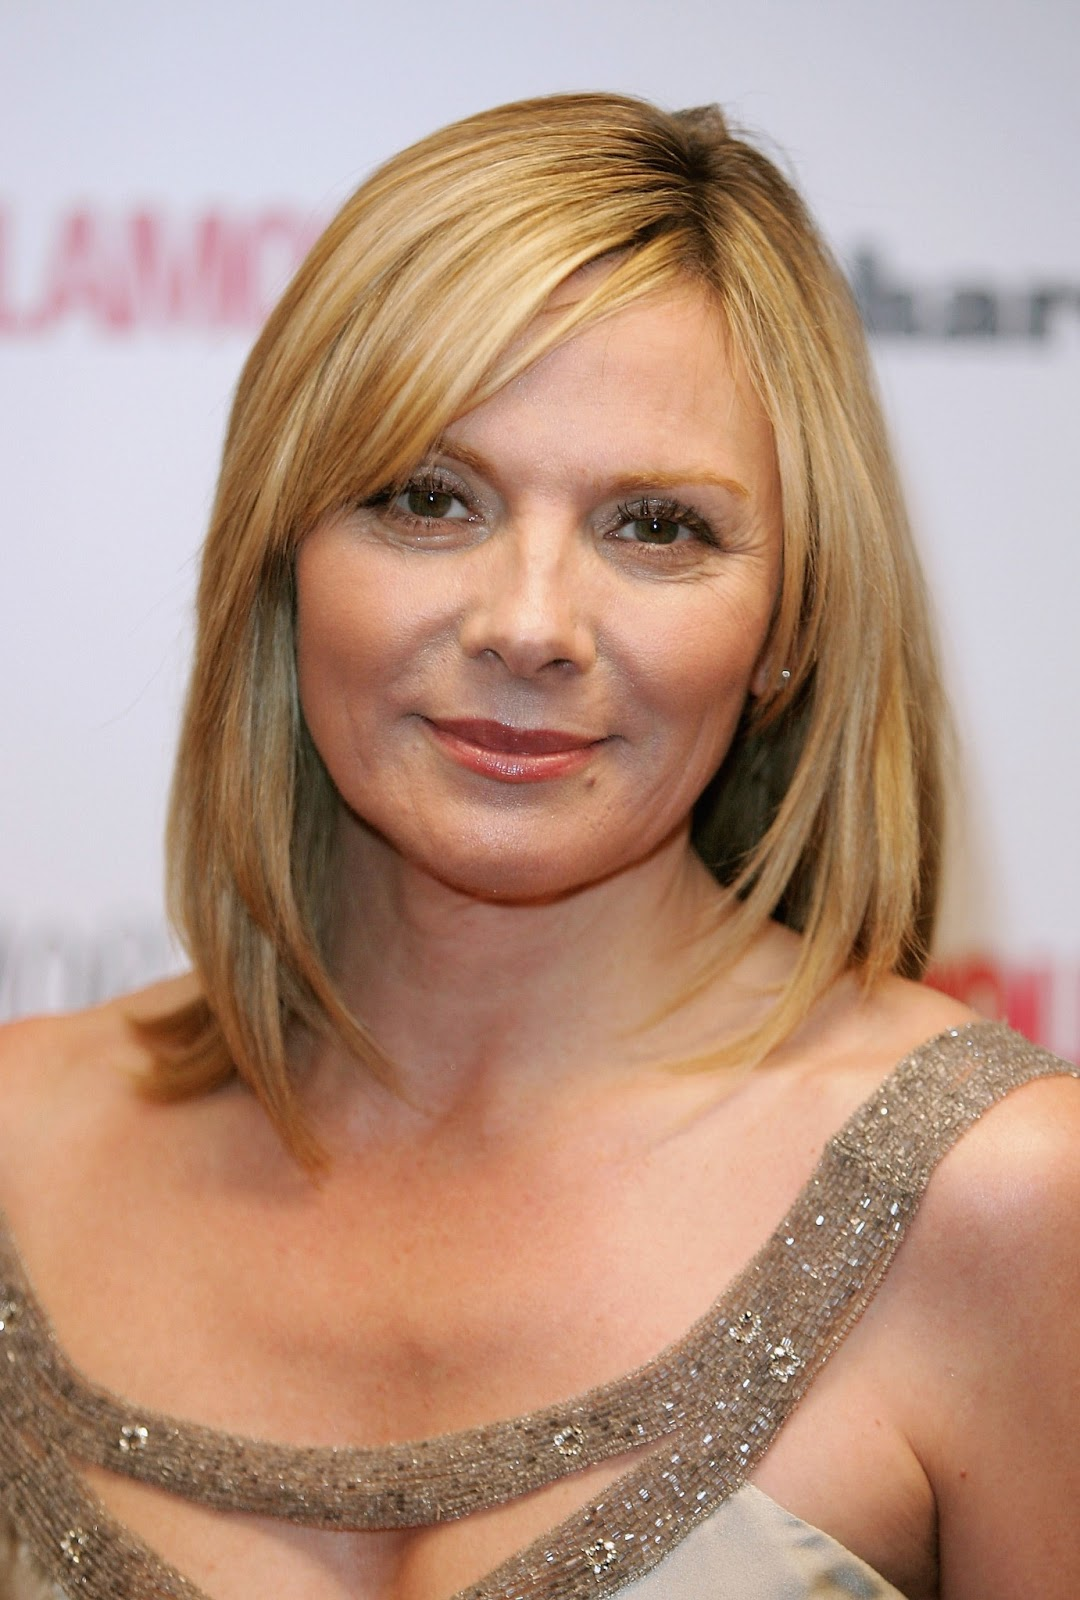 Kim Cattrall - Hollywood Actress Style Kim Cattrall Worth